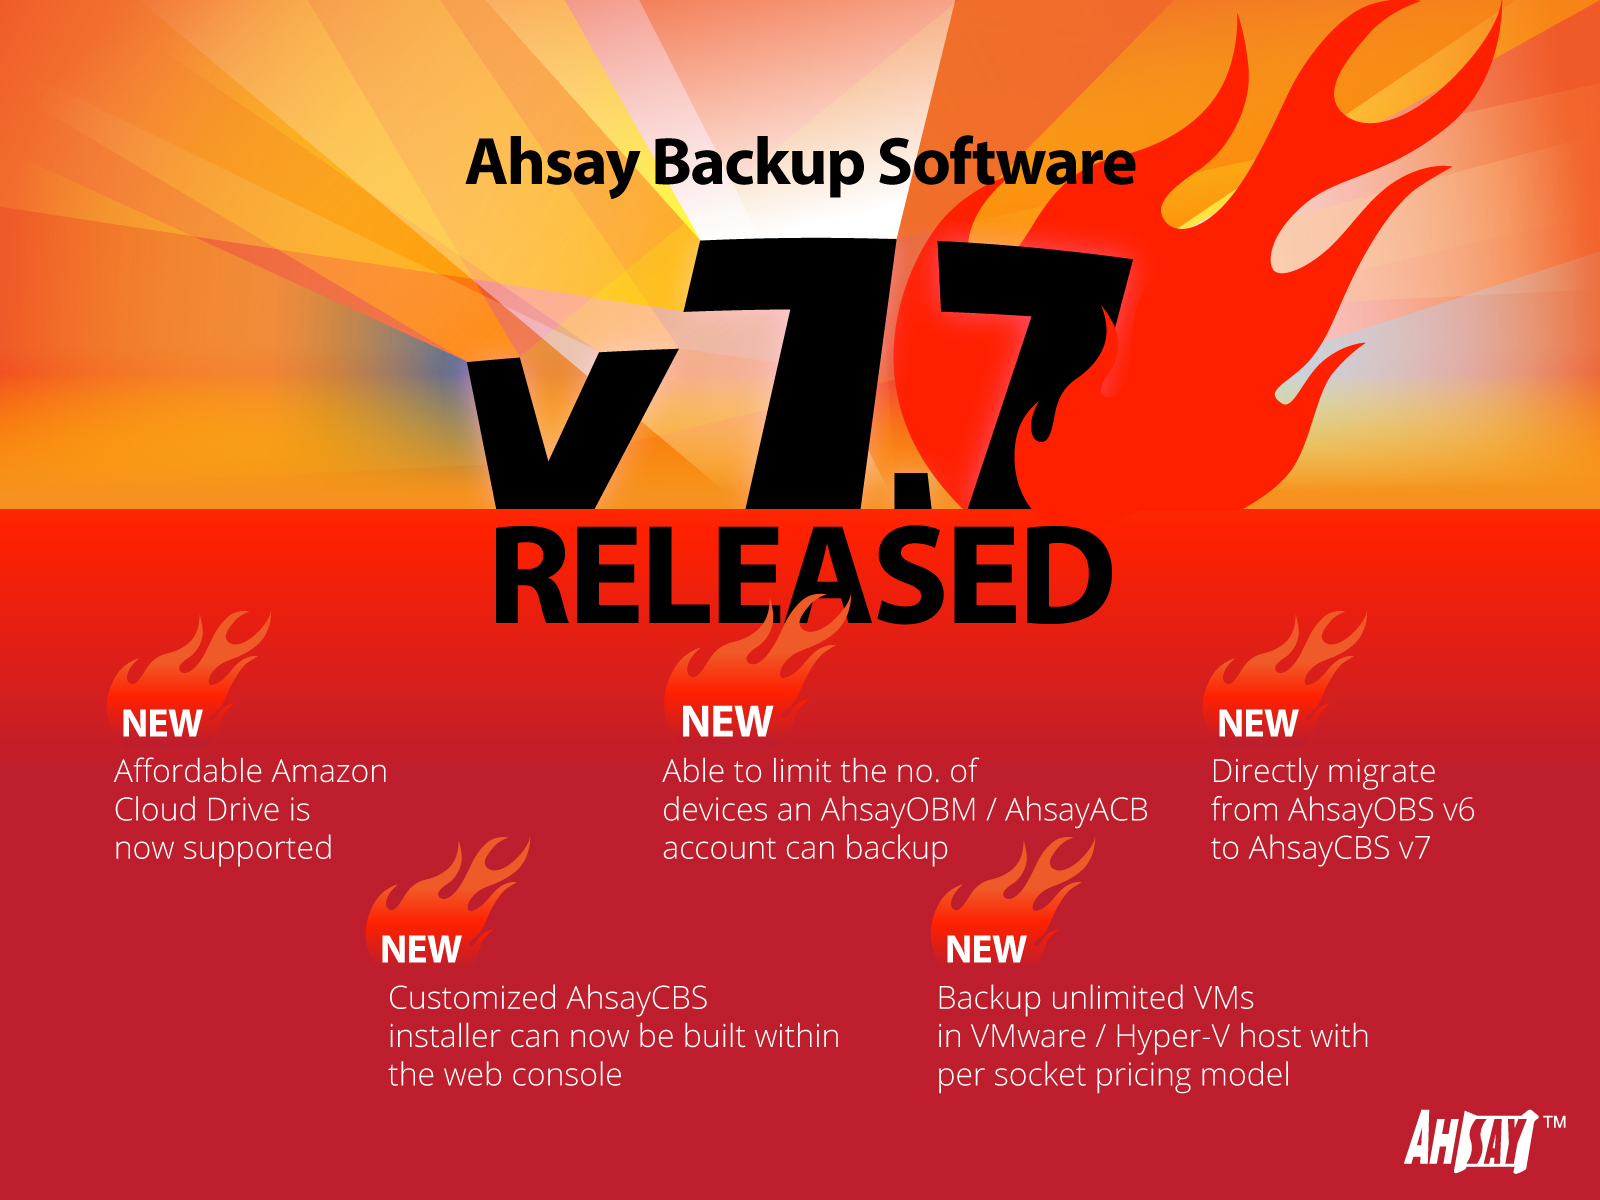 Ahsay-Backup-Software-Version-77-released